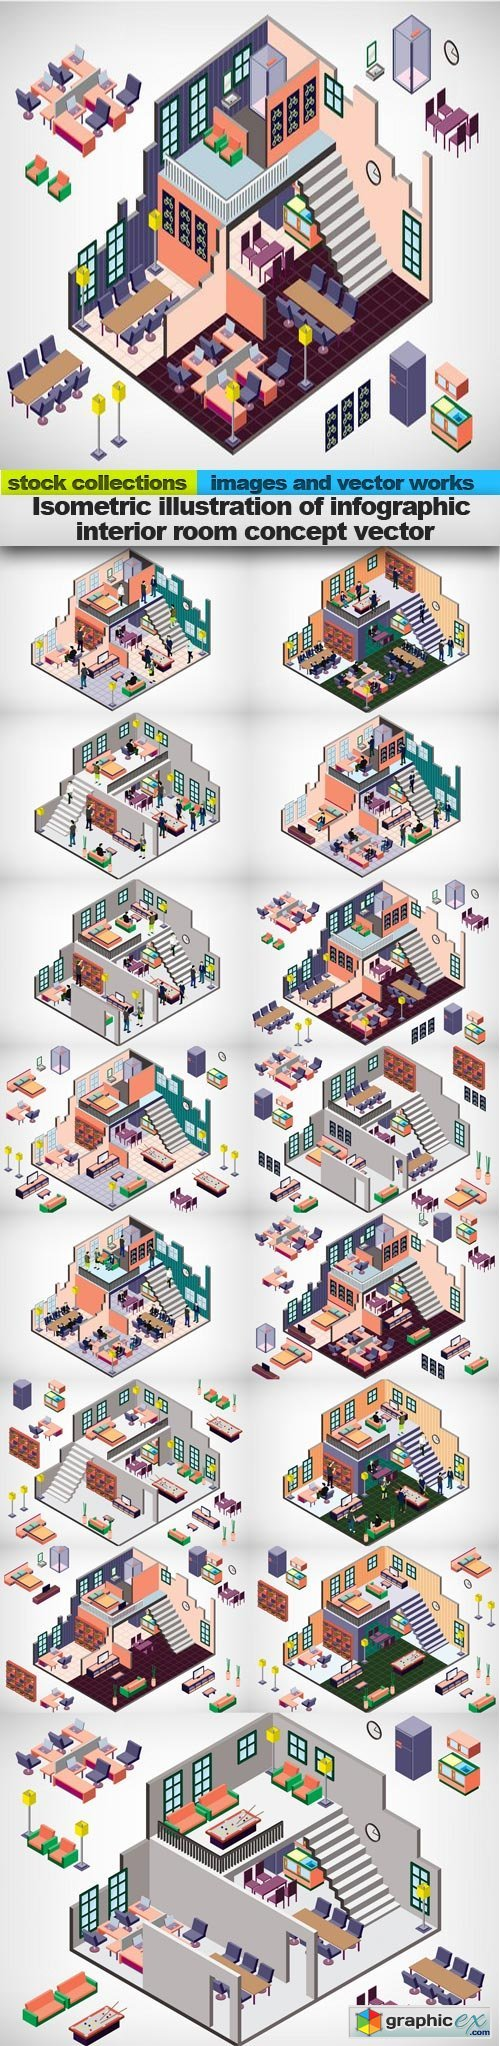 Isometric illustration of infographic interior room concept vector, 15 x EPS